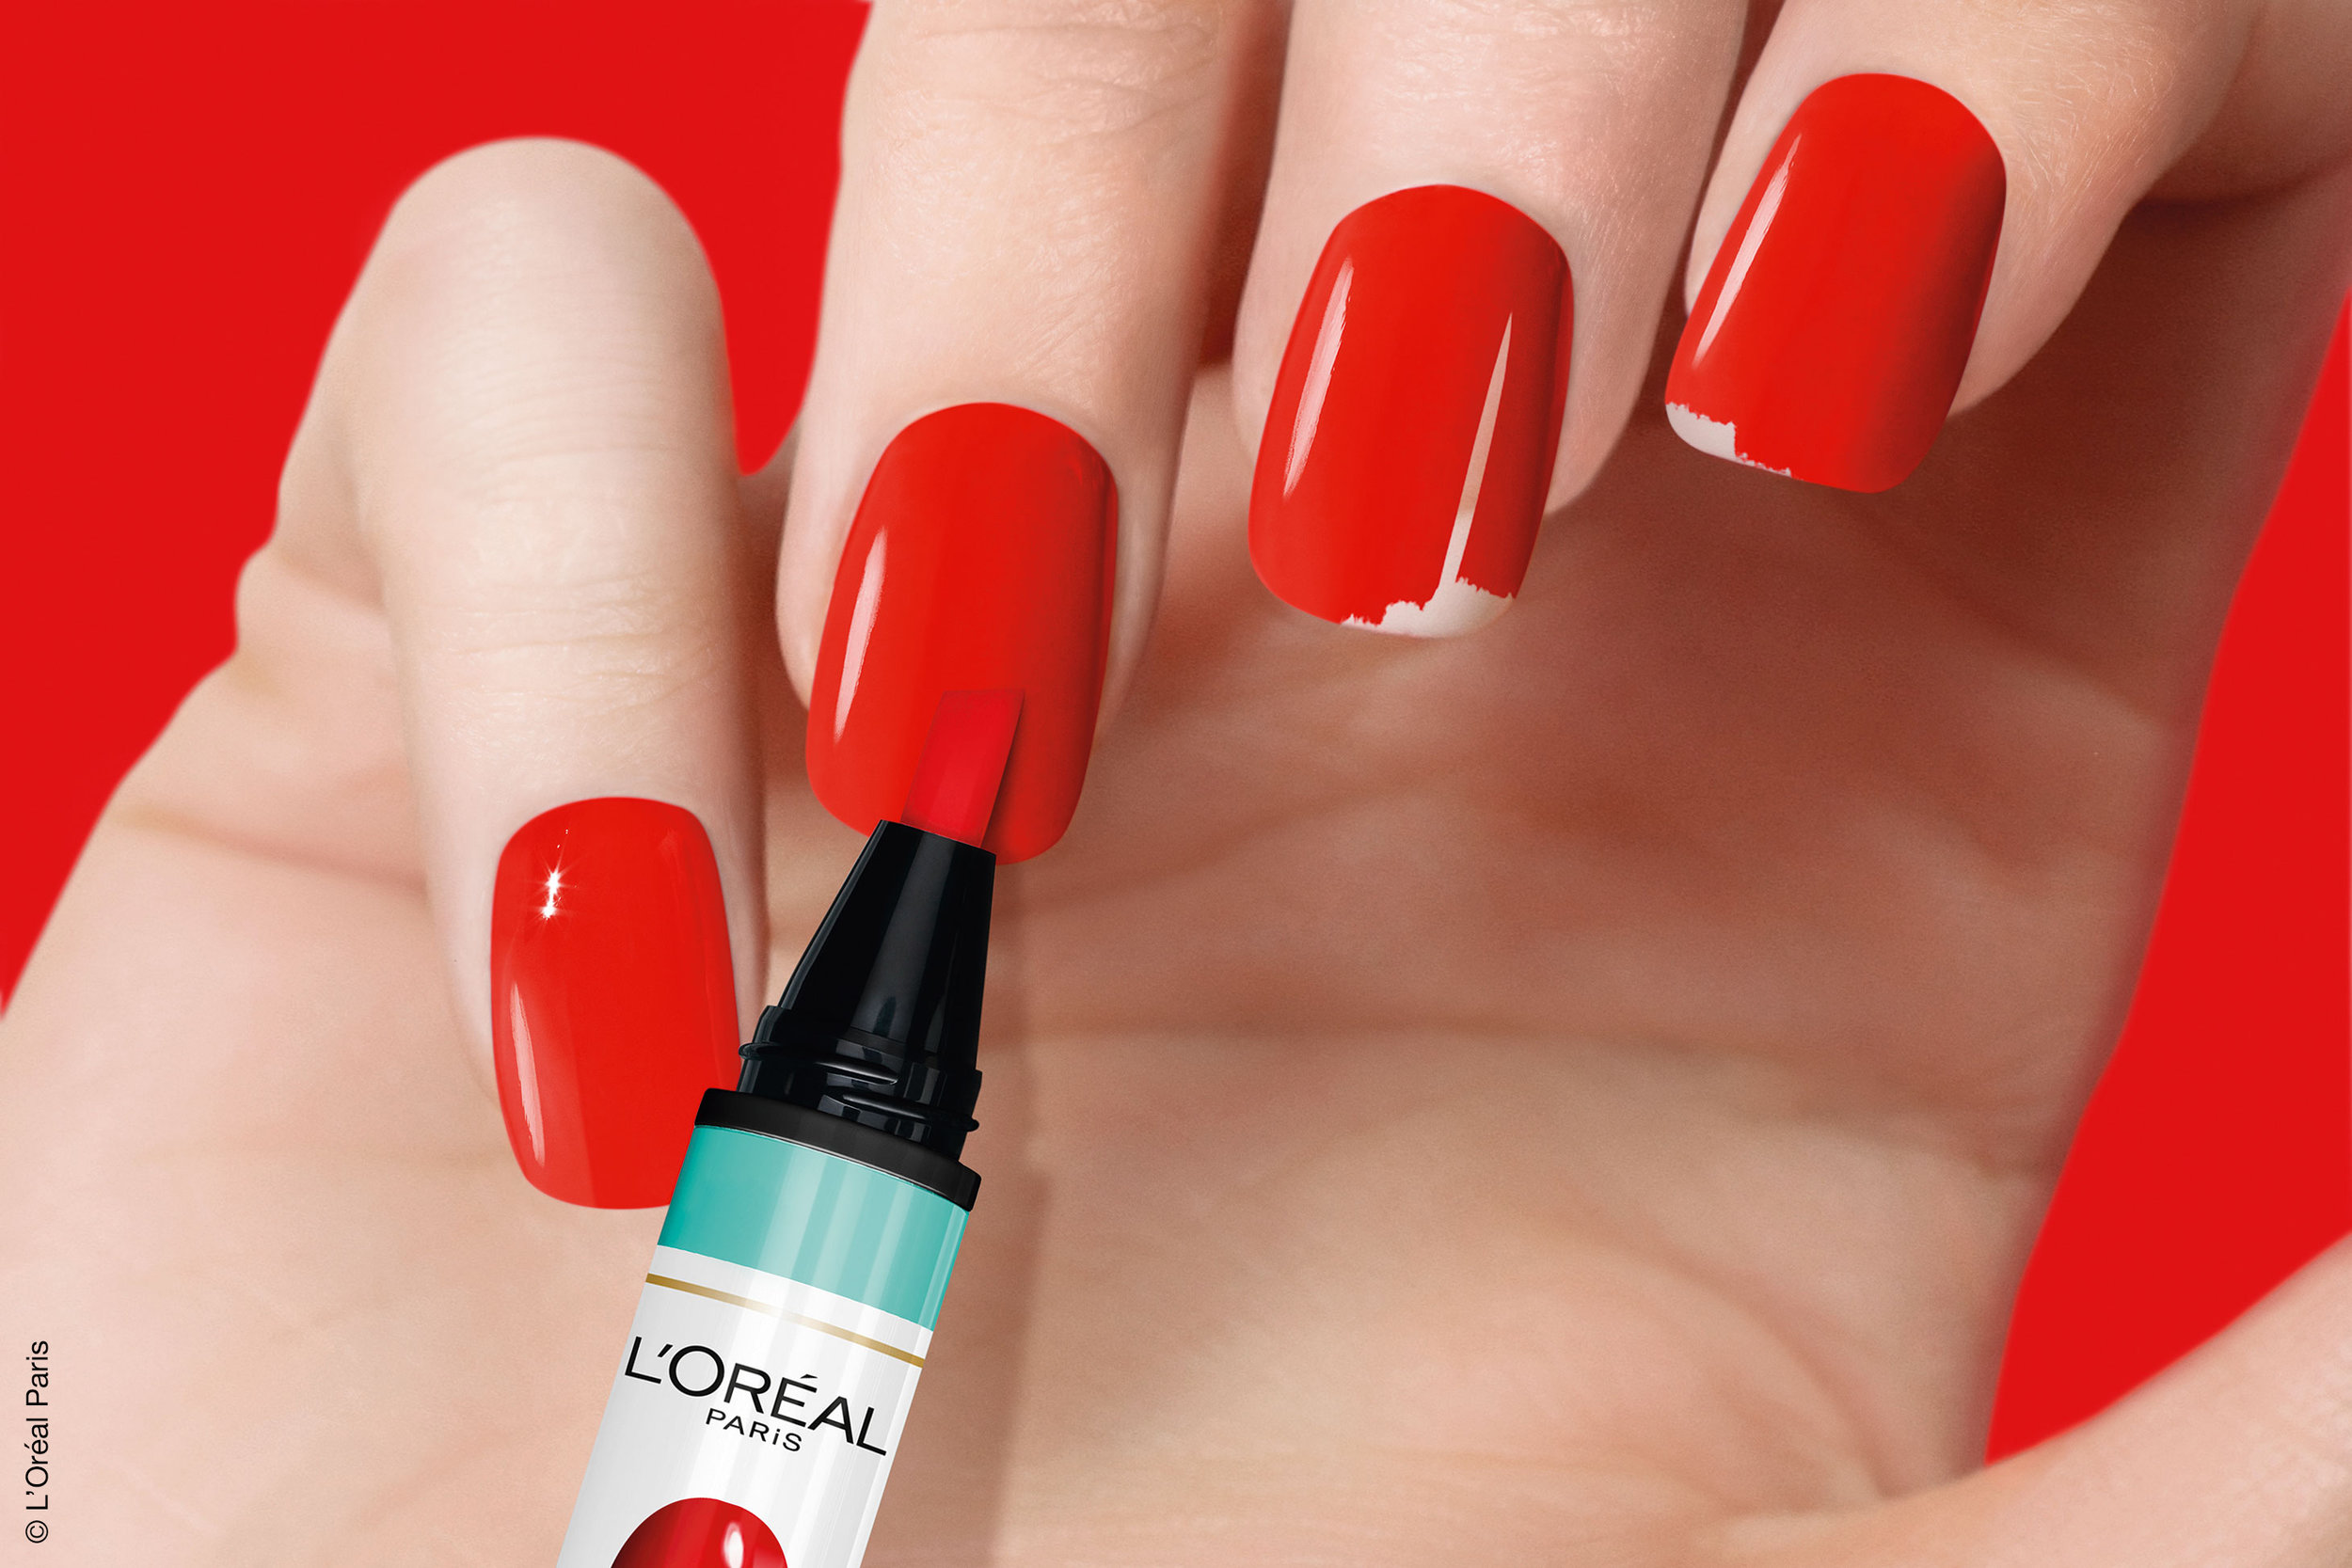 Magic Mani & go retouch pen by L'oréal. -